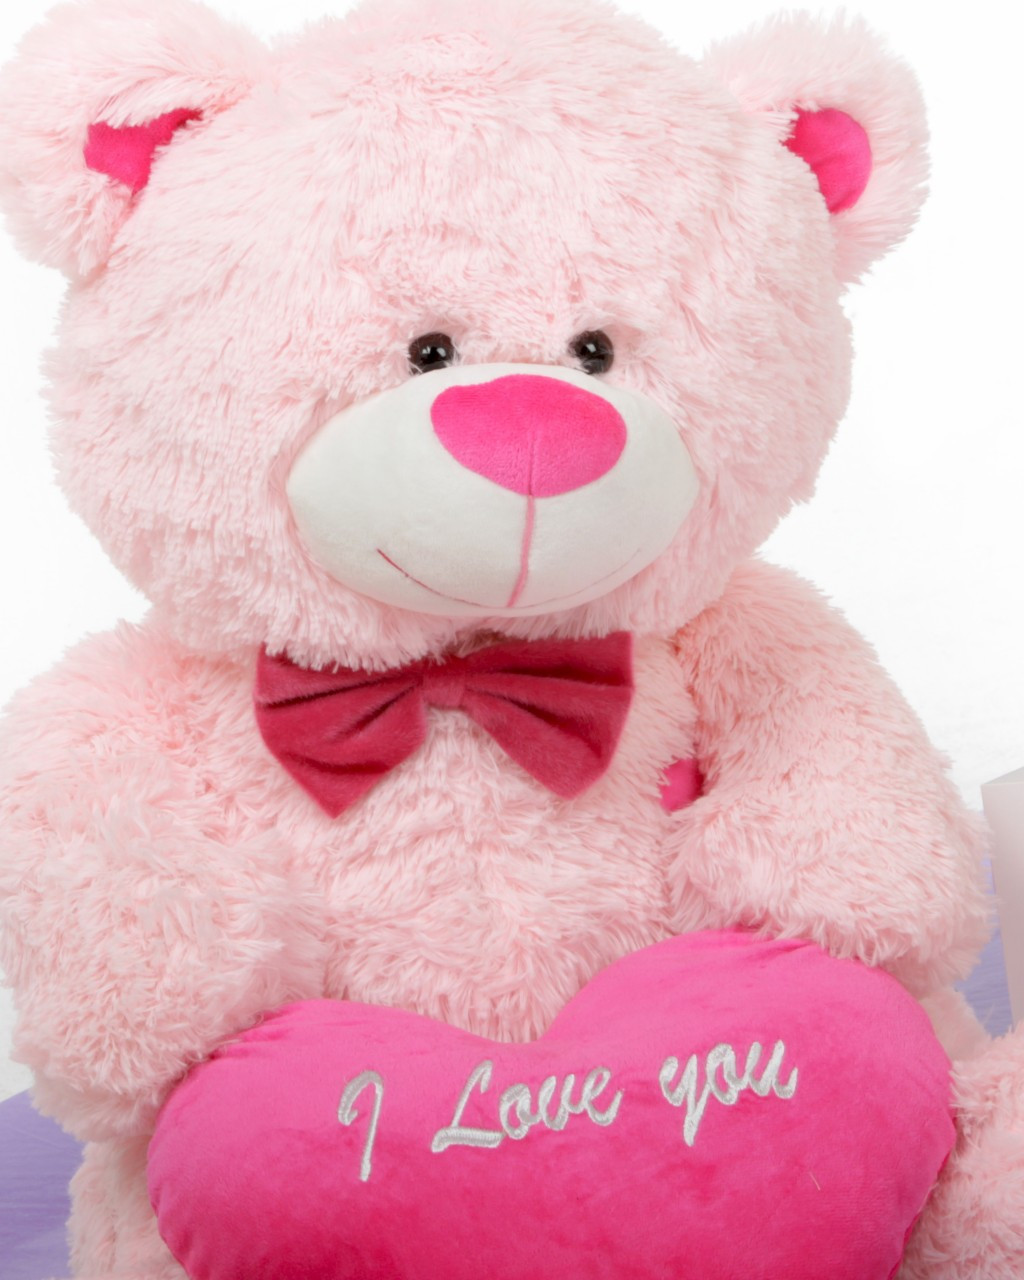 30in Pink Teddy Bear with I Love You Heart LuLu Shags